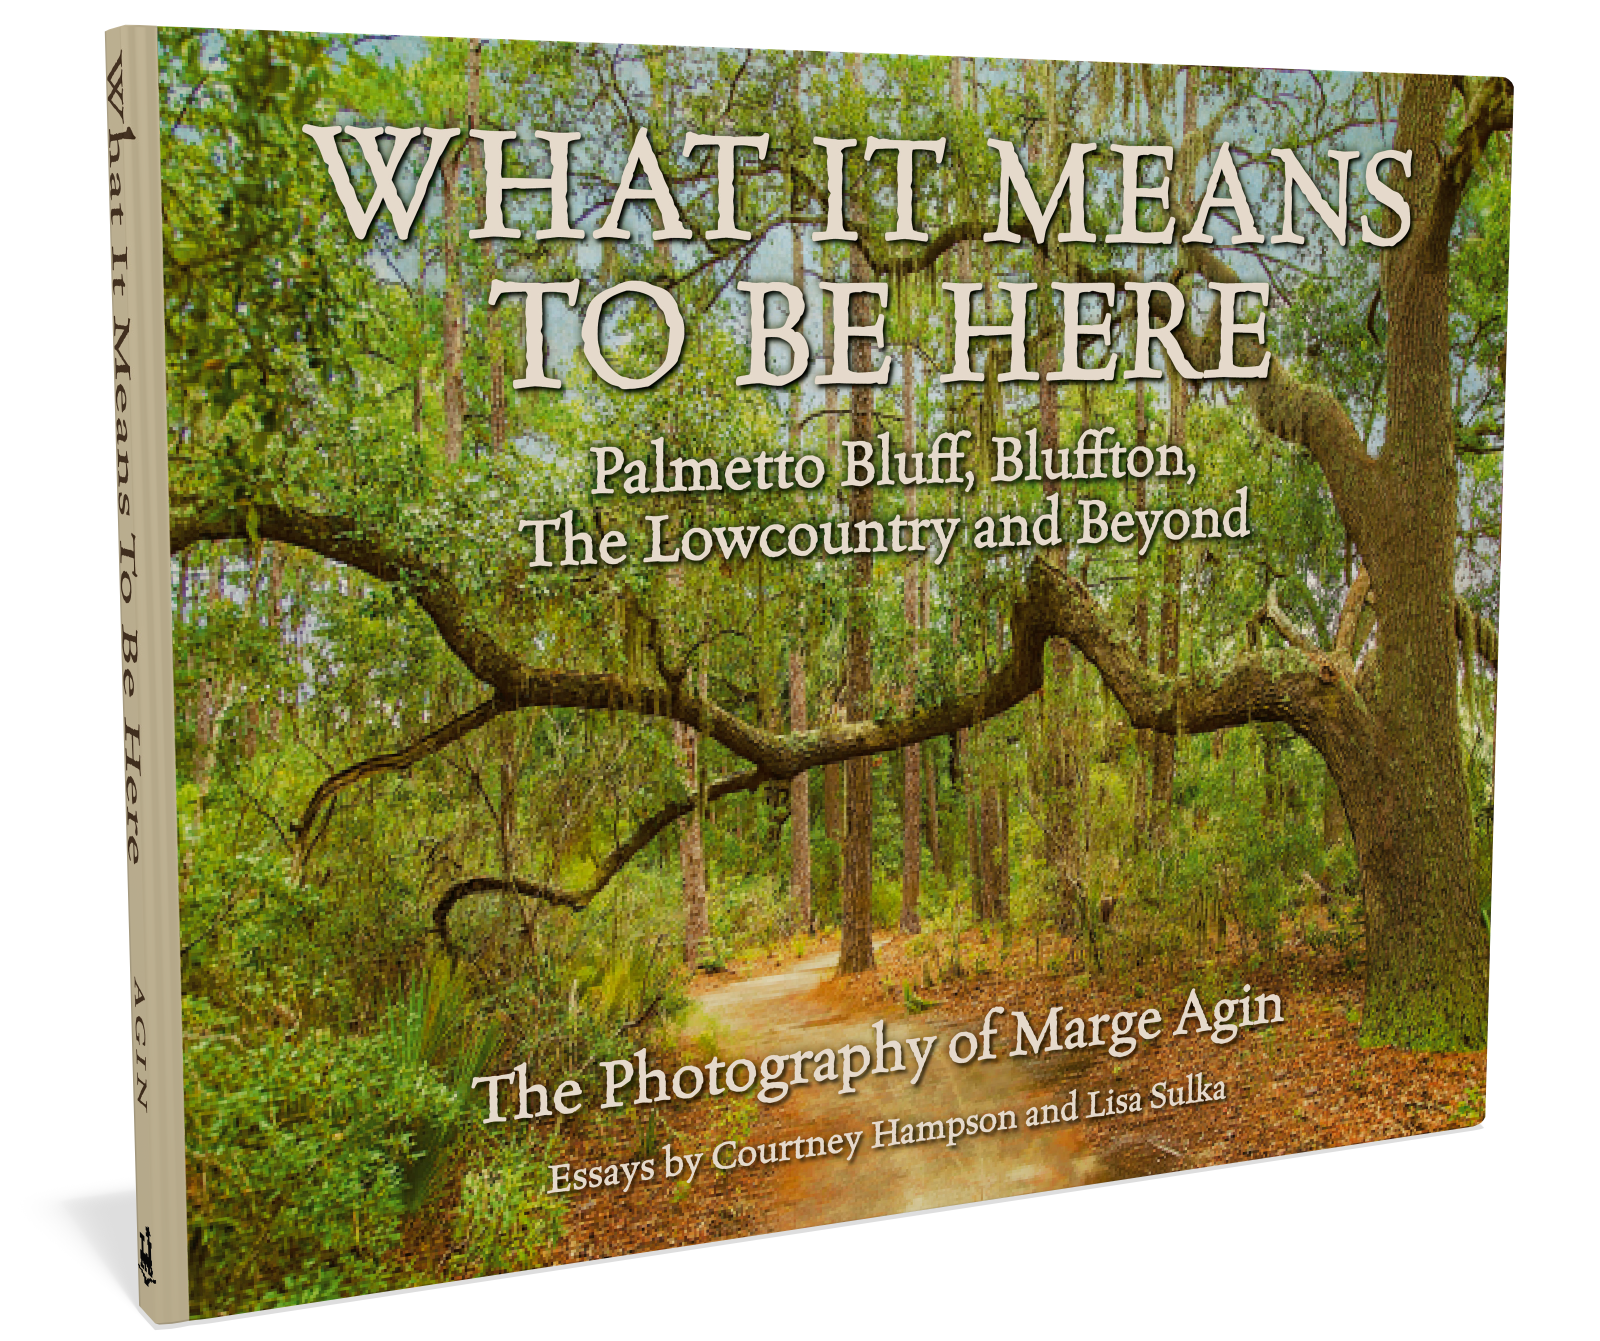 What It Means To Be Here: Palmetto Bluff, Bluffton, The Lowcountry and Beyond